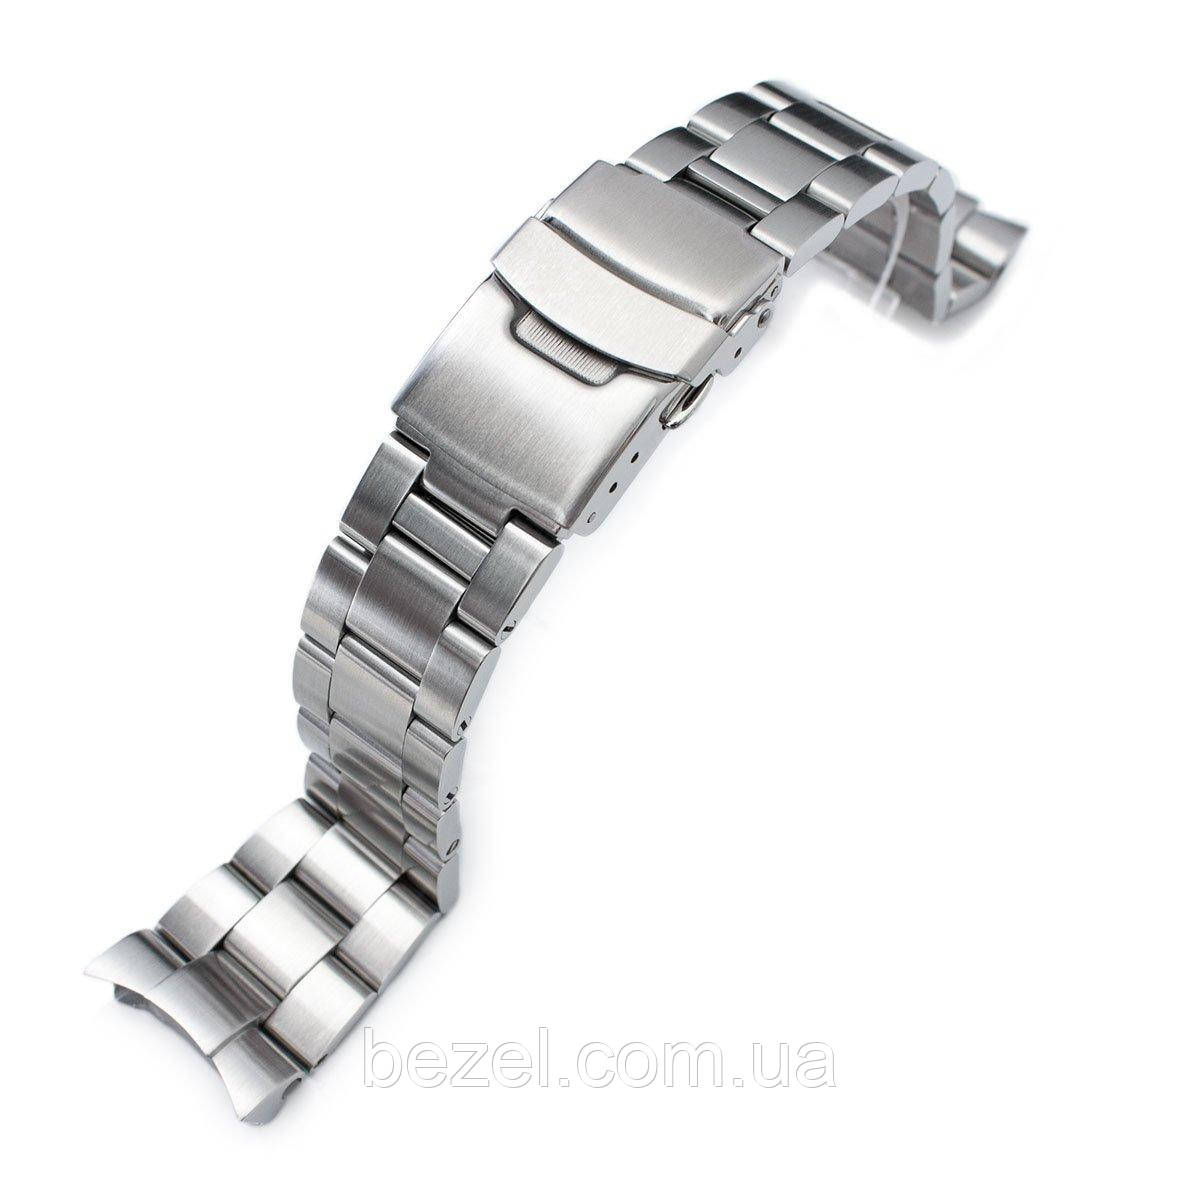 22mm Super 3D Oyster watch band for SEIKO Diver SKX007/009/011 Curved End